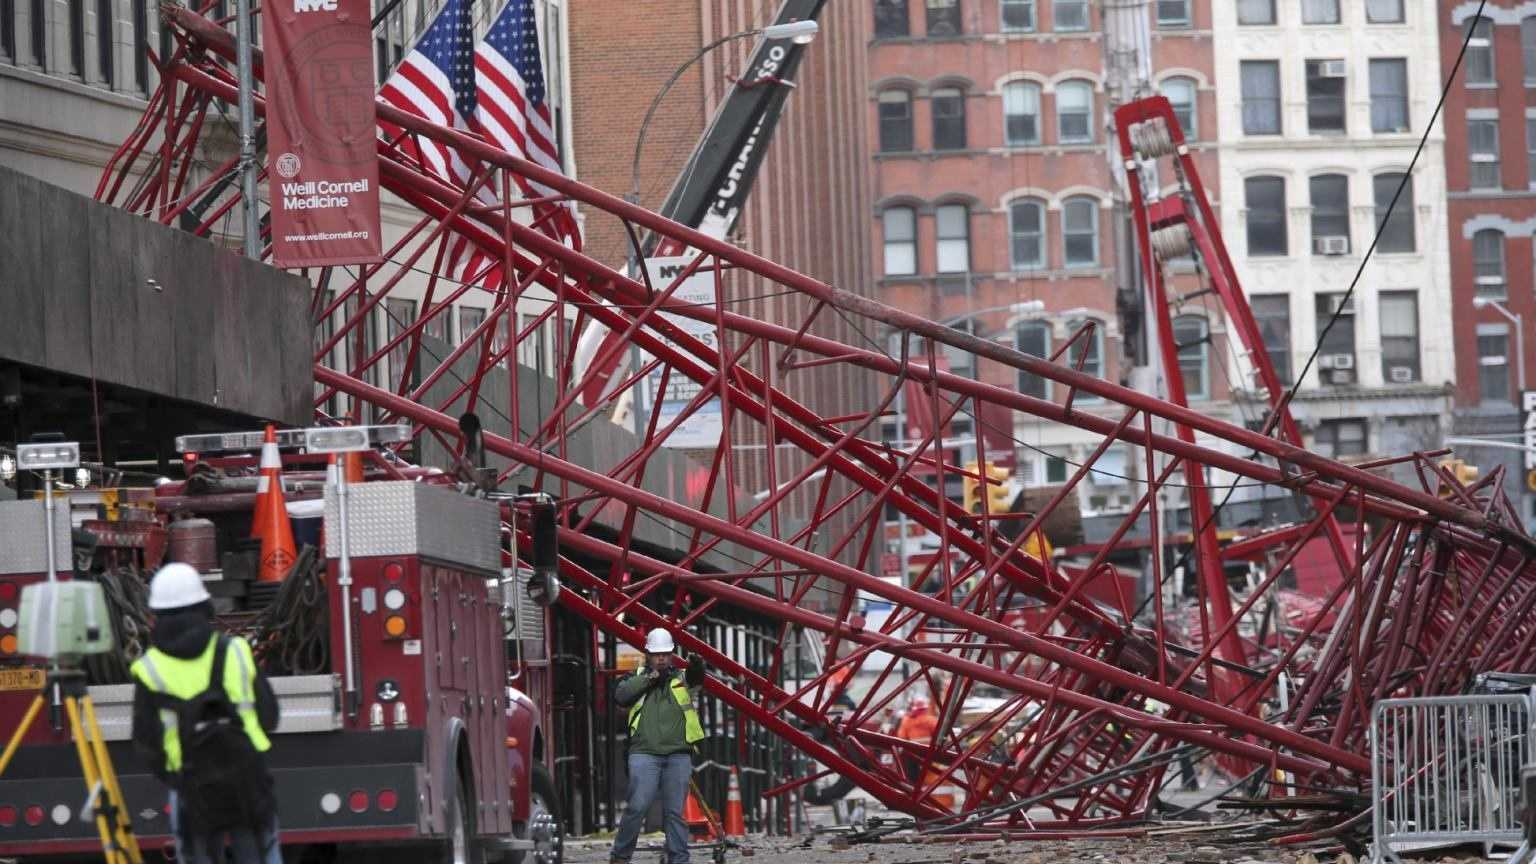 Firefighters and construction crews work on clearing a collapsed crane, Saturday, Feb. 6, 2016, in New York. Officials are working to determine why a huge construction crane that was being lowered during strong winds came crashing down onto a street.